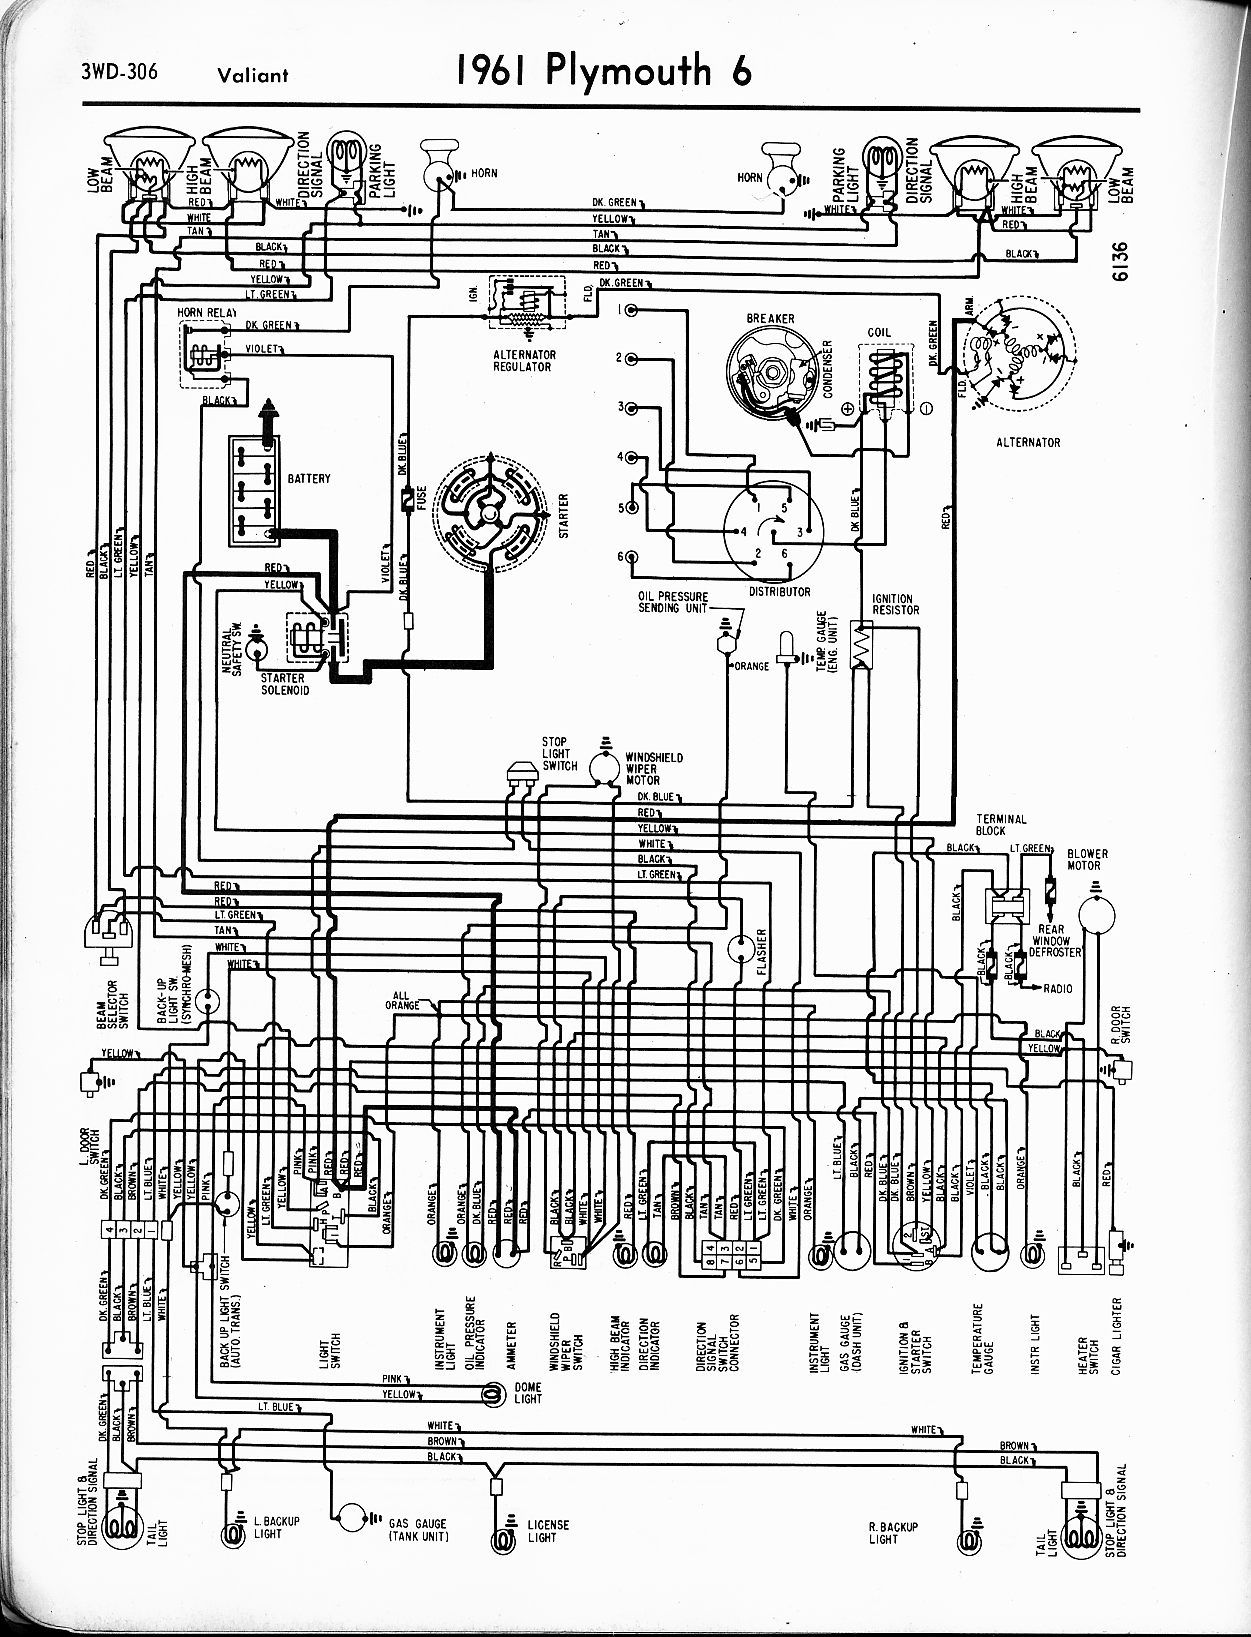 1967 Plymouth Barracuda Dash Wiring Diagram Diy Enthusiasts 1970 Camaro Ignition 1956 1965 The Old Car Manual Project Rh Oldcarmanualproject Com Color